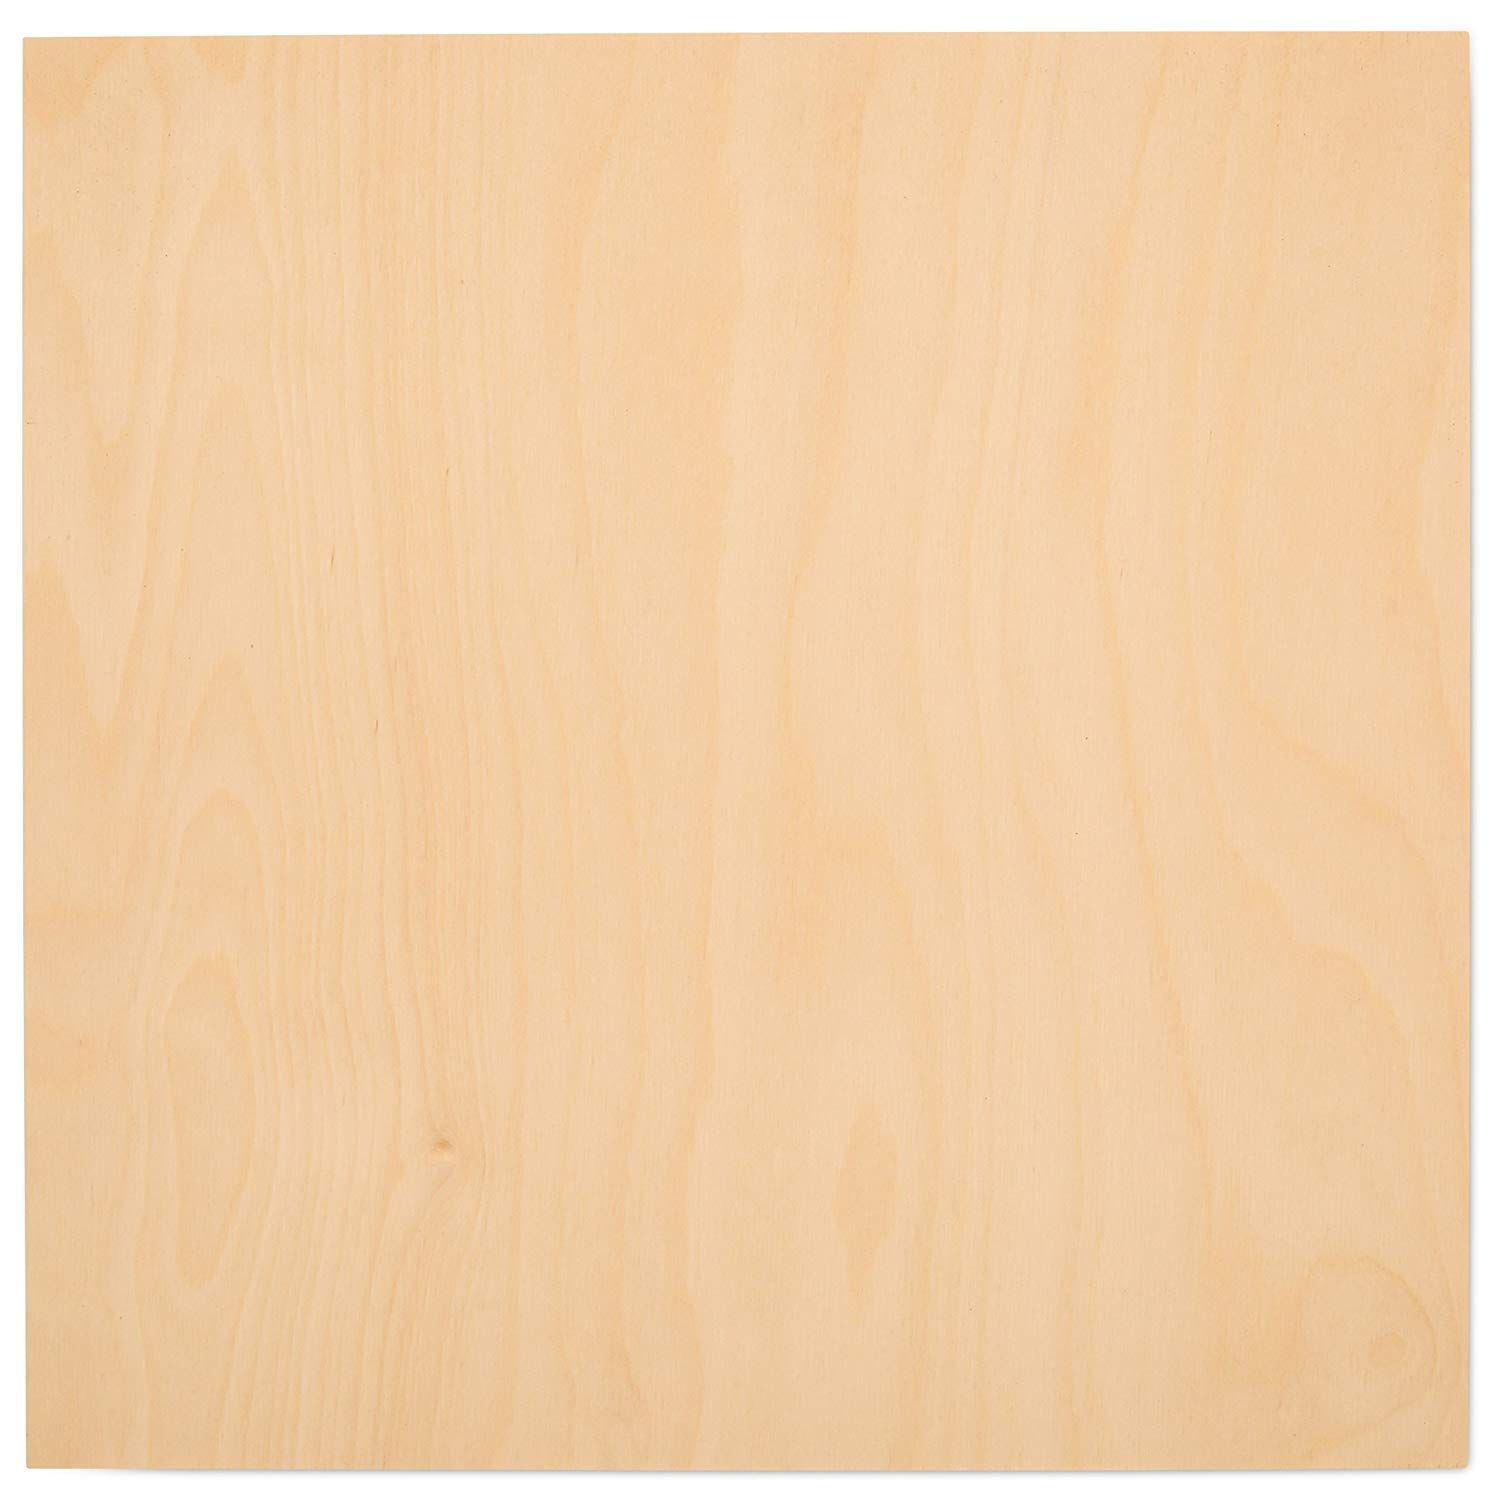 3mm 1 8 X 12 X 12 Premium Baltic Birch Plywood Box Of 45 B Bb Grade Birch Veneer Sheets By Woodpecke Beadboard Wallpaper Vinyl Plank Flooring Wood Sample